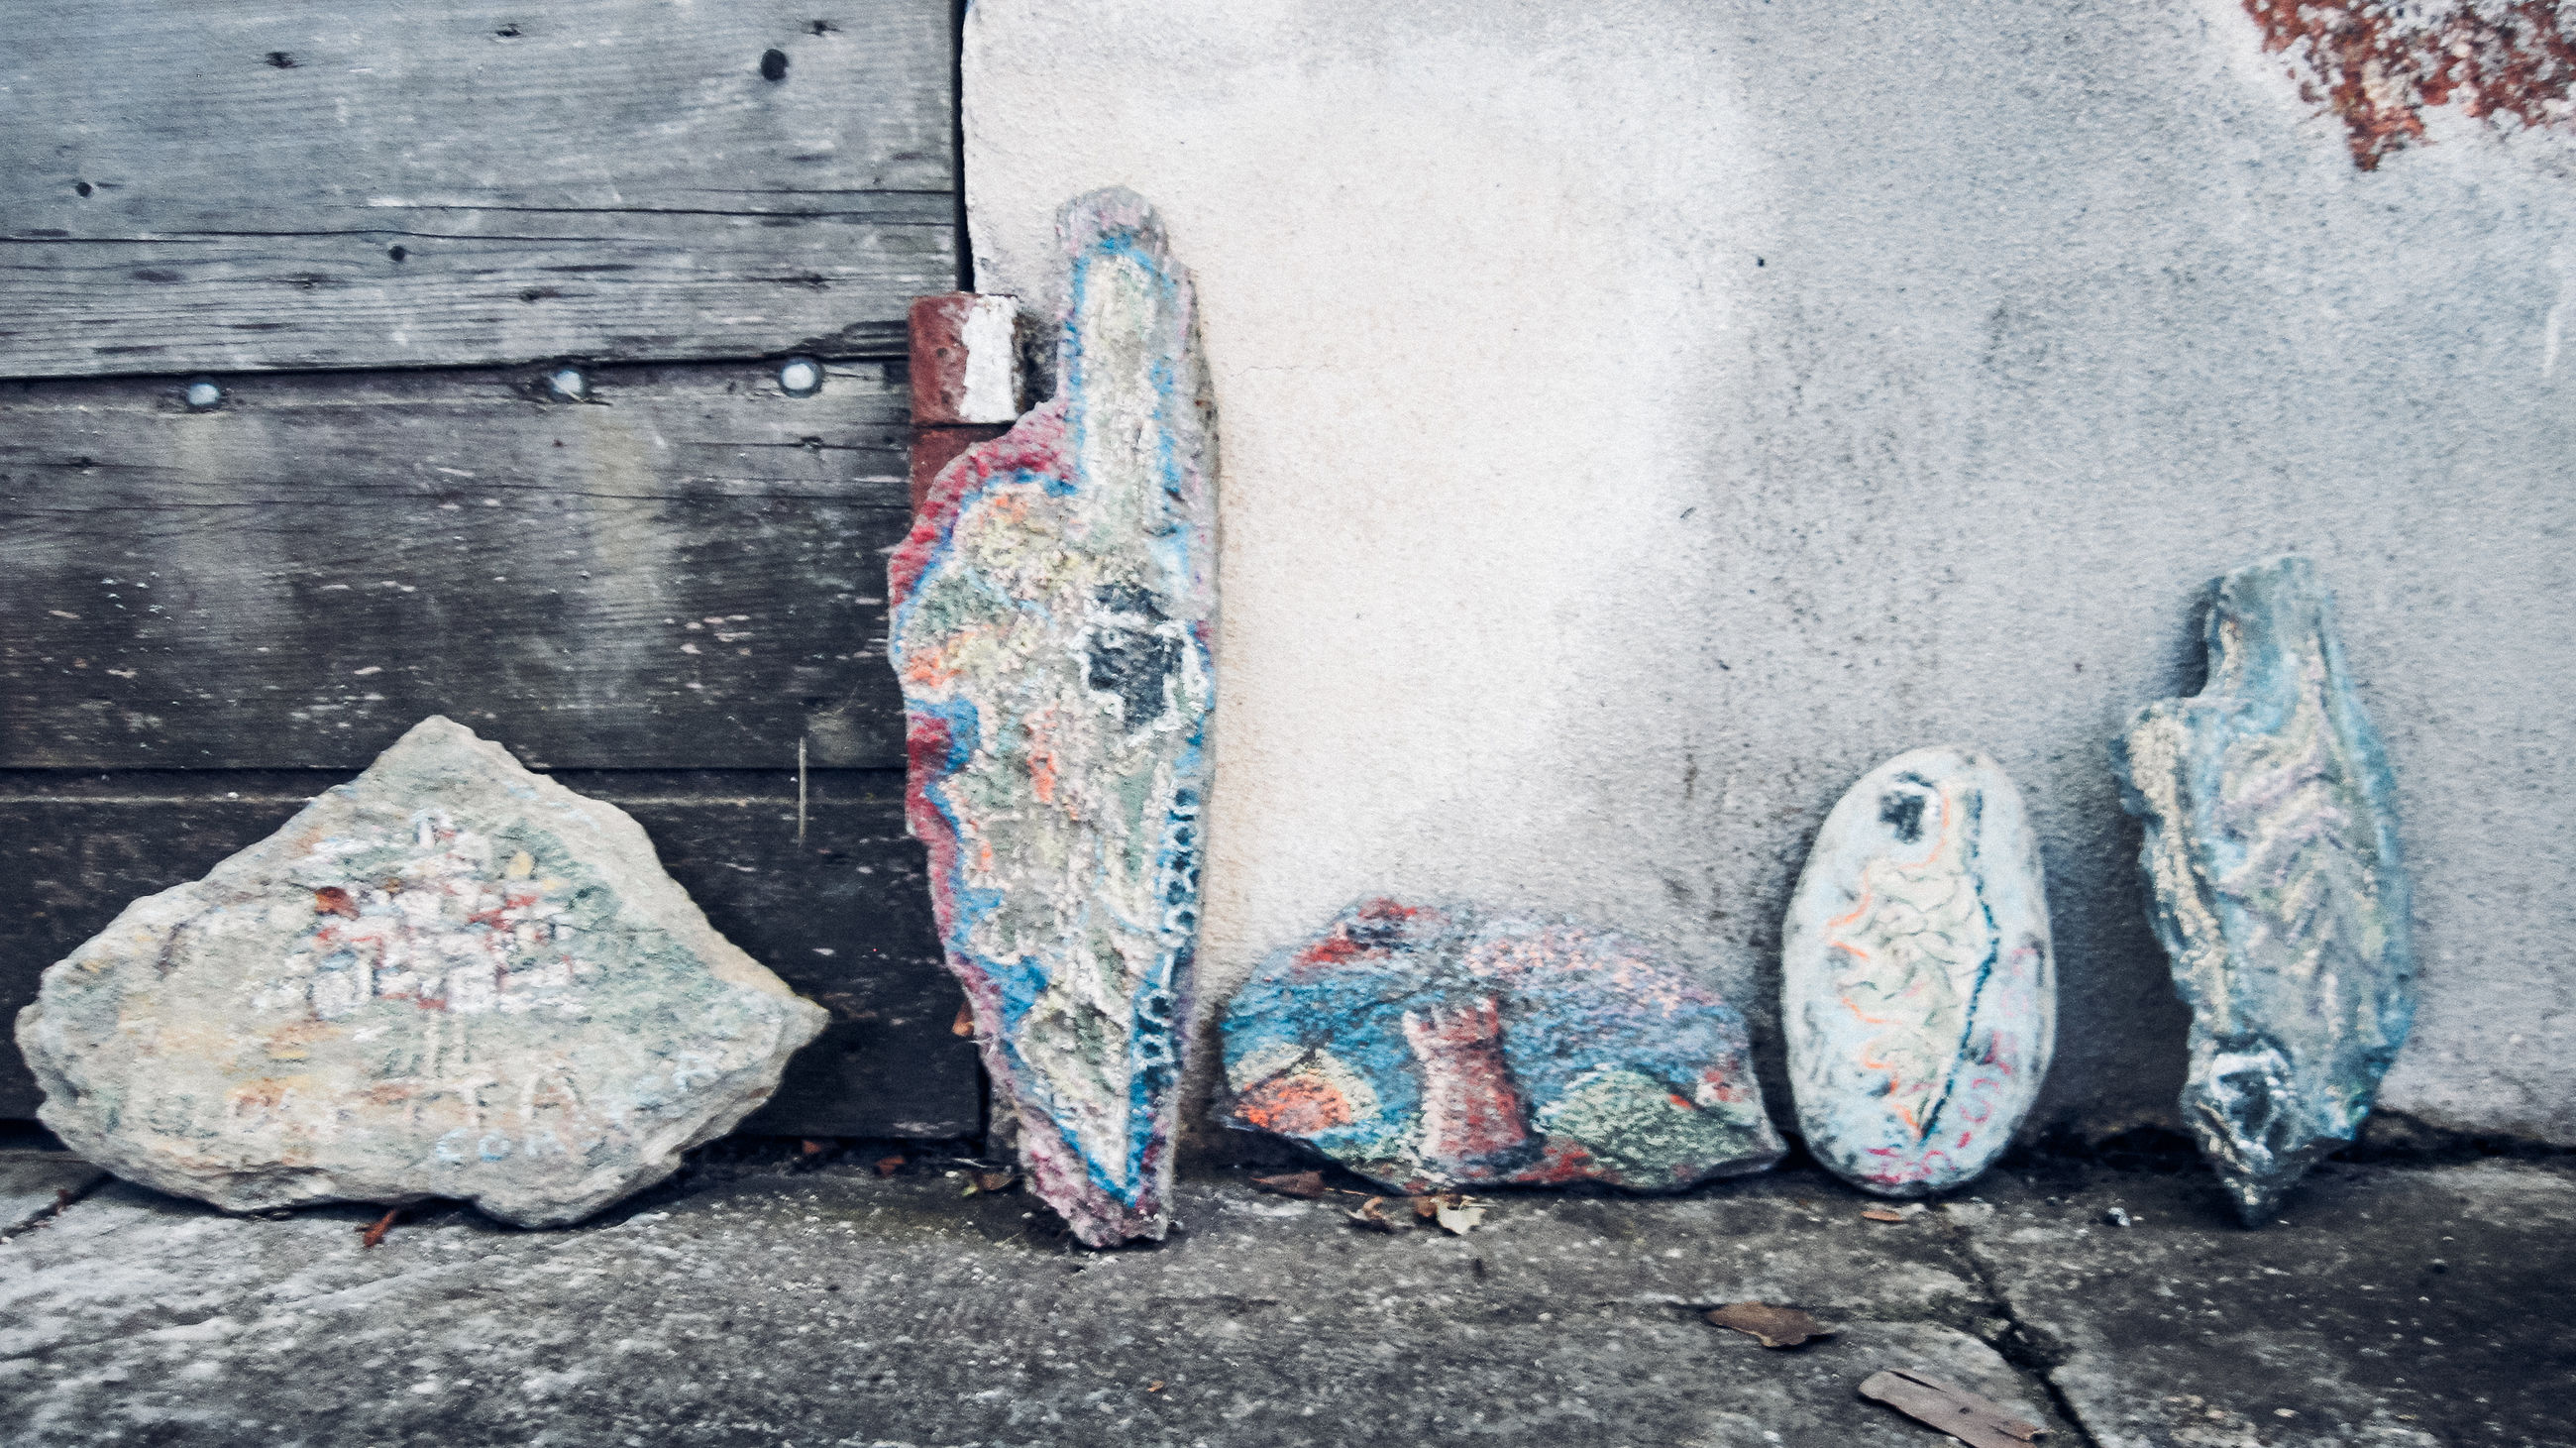 day, no people, outdoors, group of objects, blue, wall - building feature, wood - material, shoe, architecture, textured, close-up, medium group of objects, city, choice, pair, nature, street, variation, paint, concrete